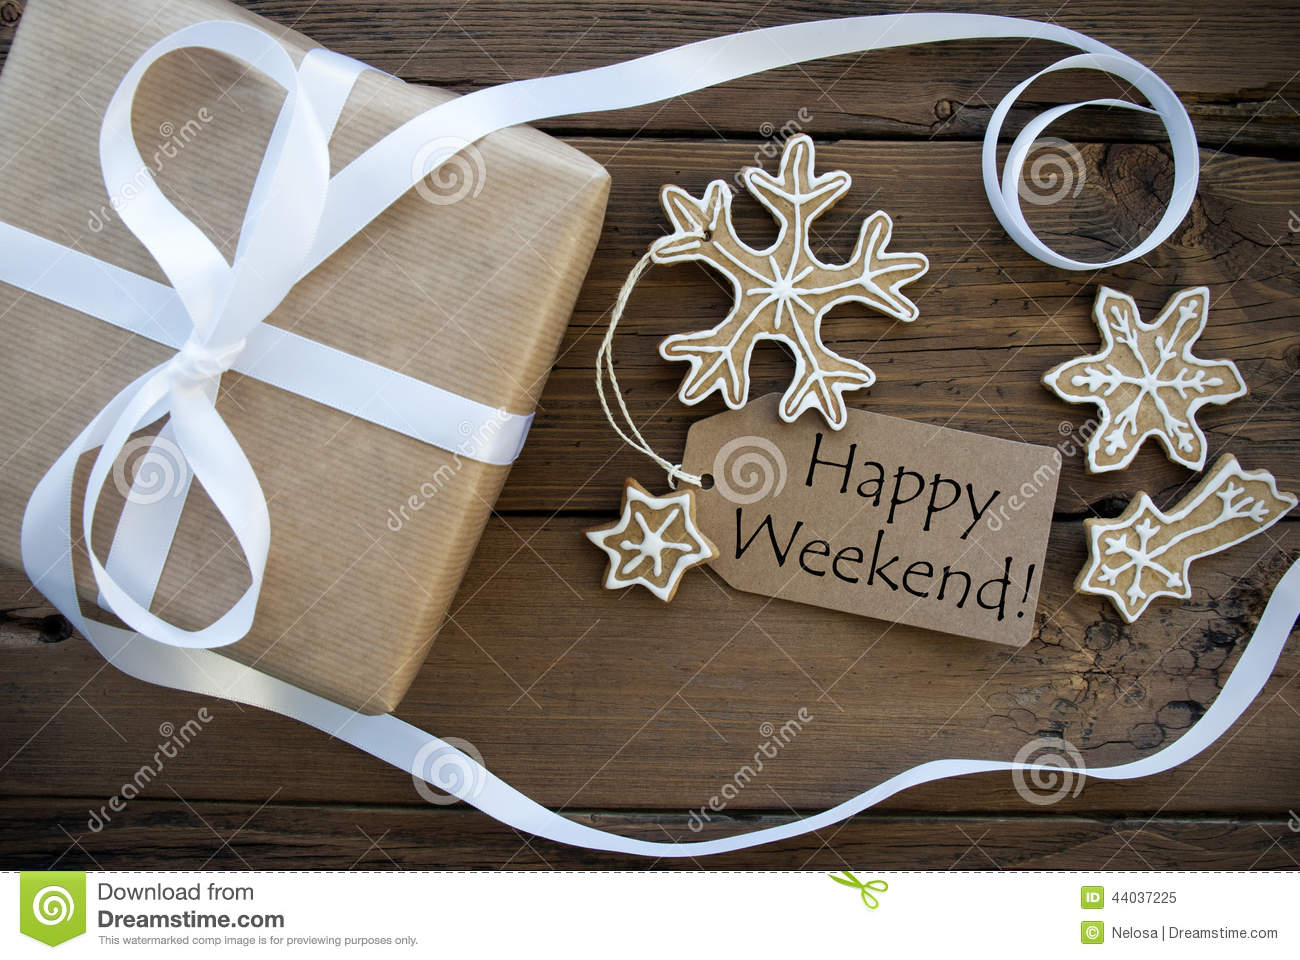 Happy Weekend Greetings With Winter Background Stock Image